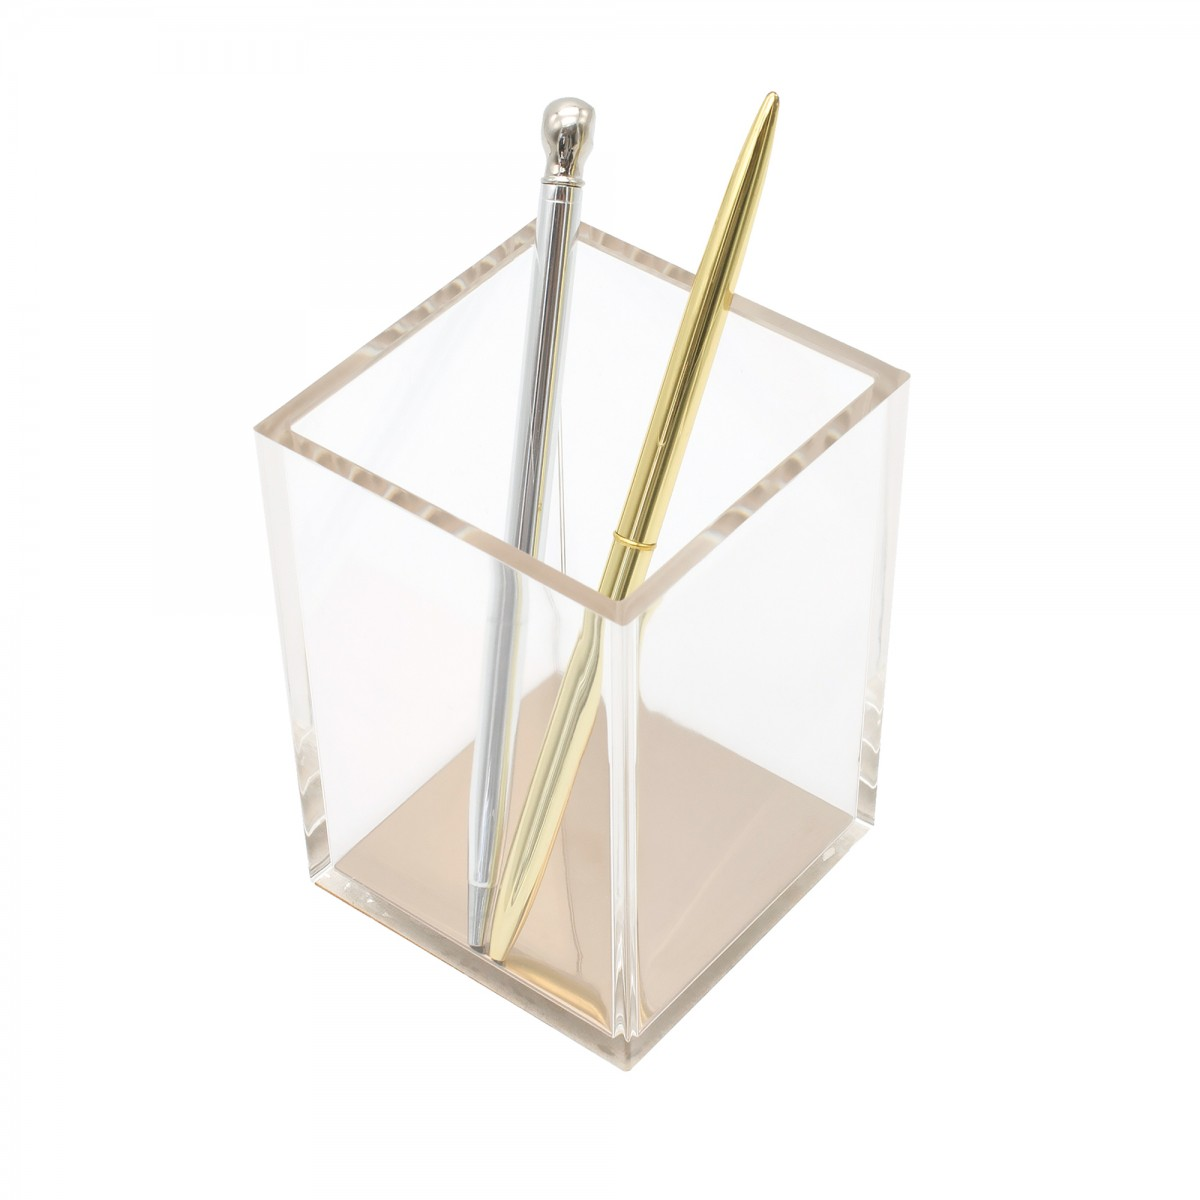 STATIONERY.LIFE ACRYLIC PEN HOLDER ROSEGOLD BOTTOM